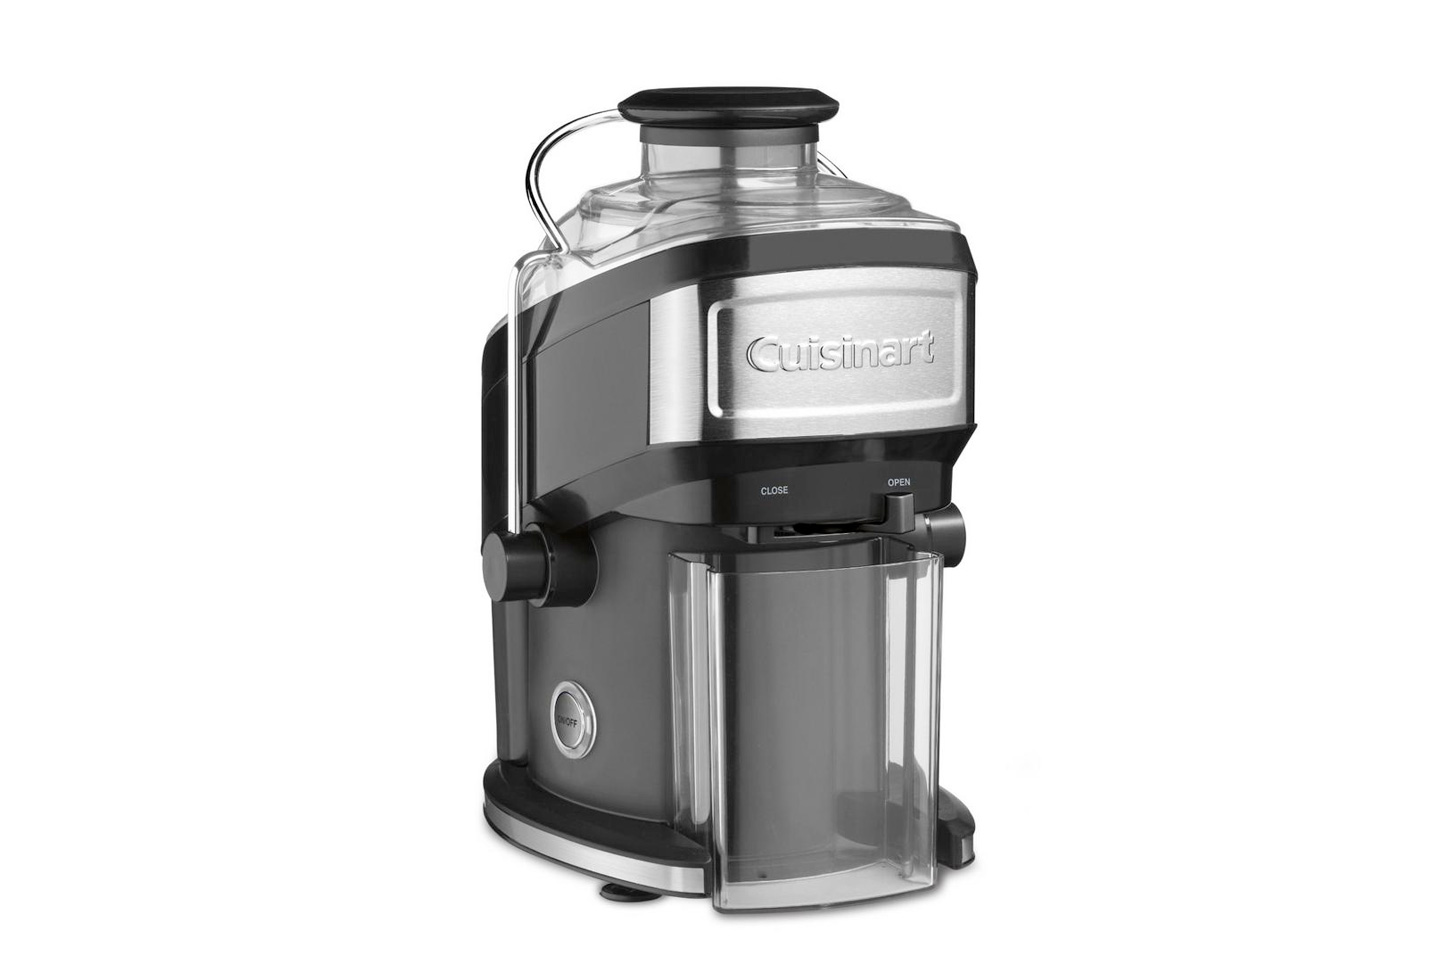 Cuisinart CJE-500 Compact Juice Extractor Review | HeartyBlends.co